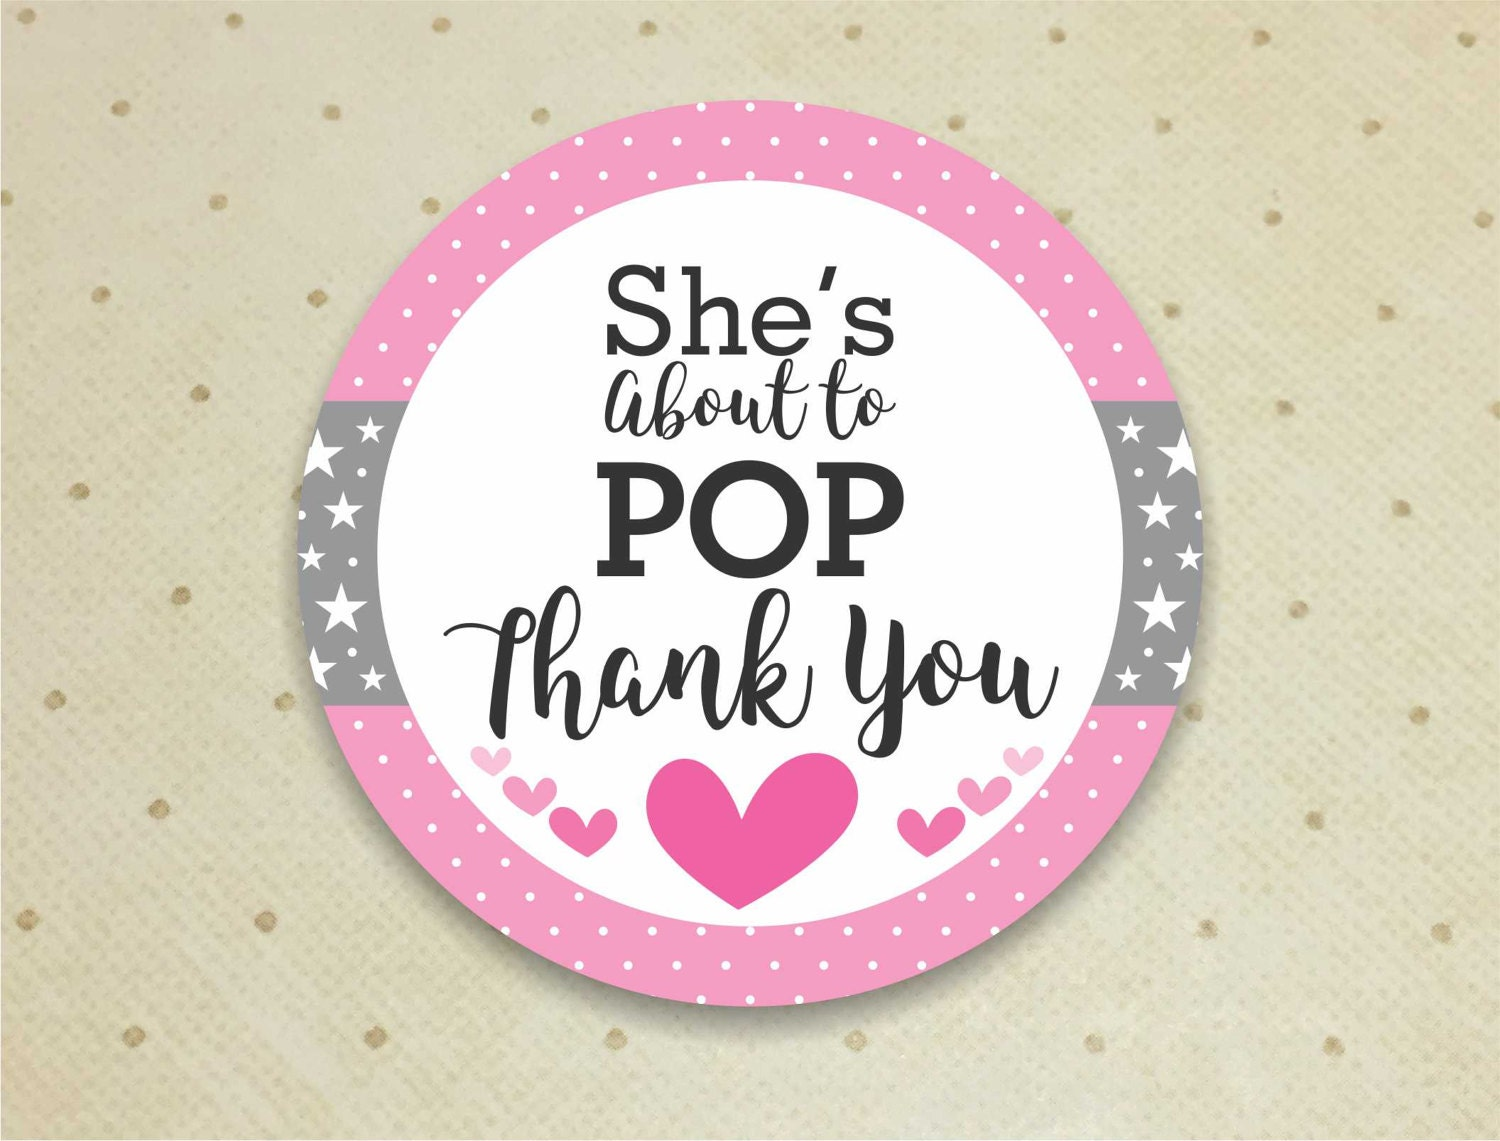 Printable baby shower favor thank you tags for girls she39s about to pop thank you tags baby for About to pop labels